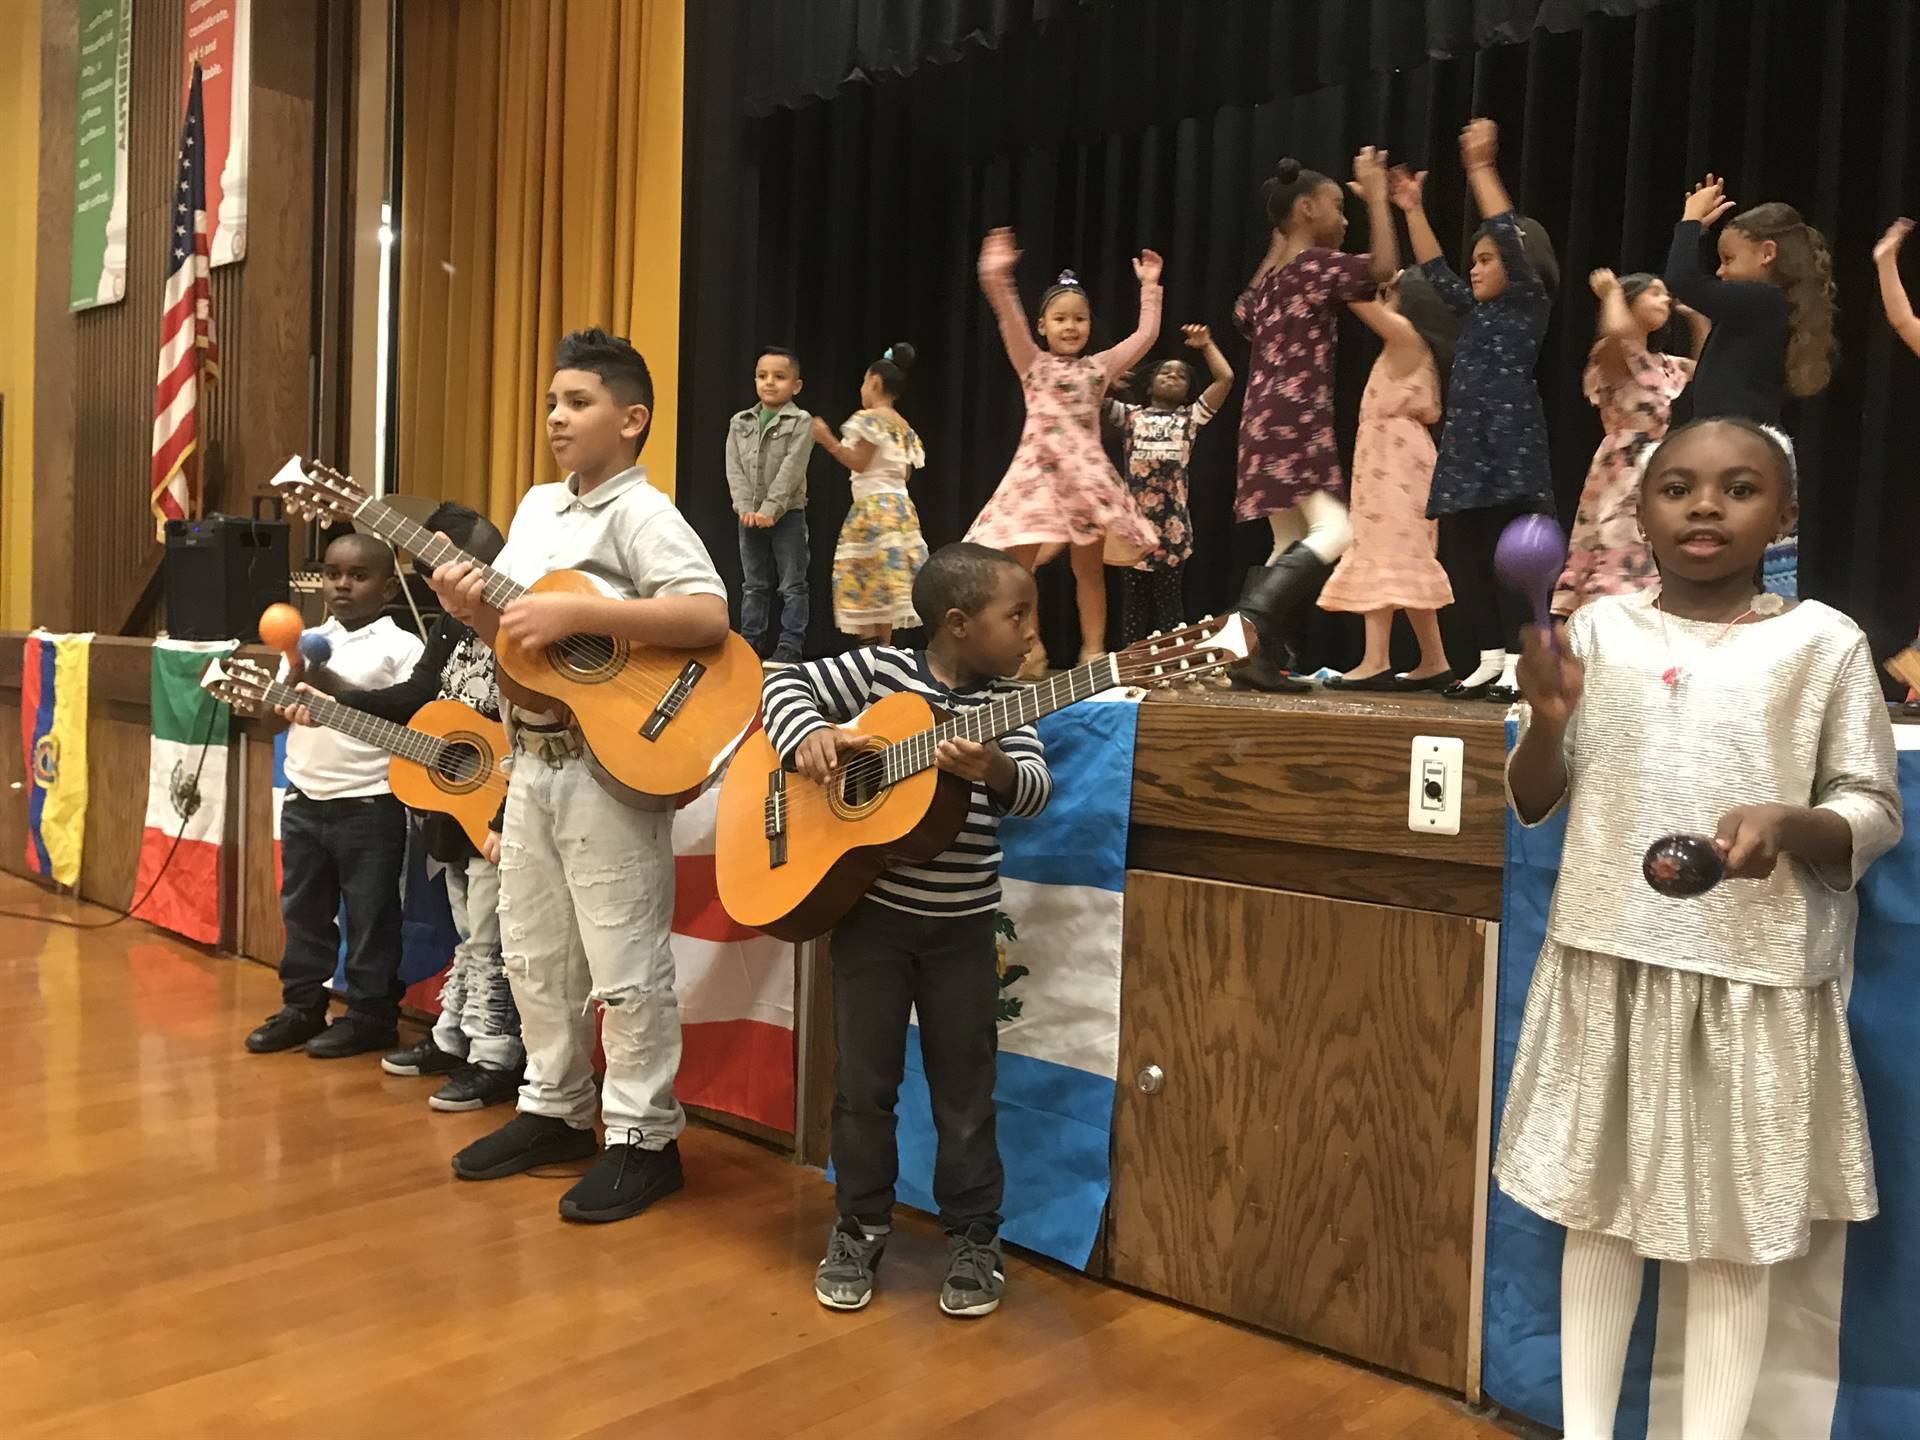 Spanish Heritage Celebration at Mott 2018